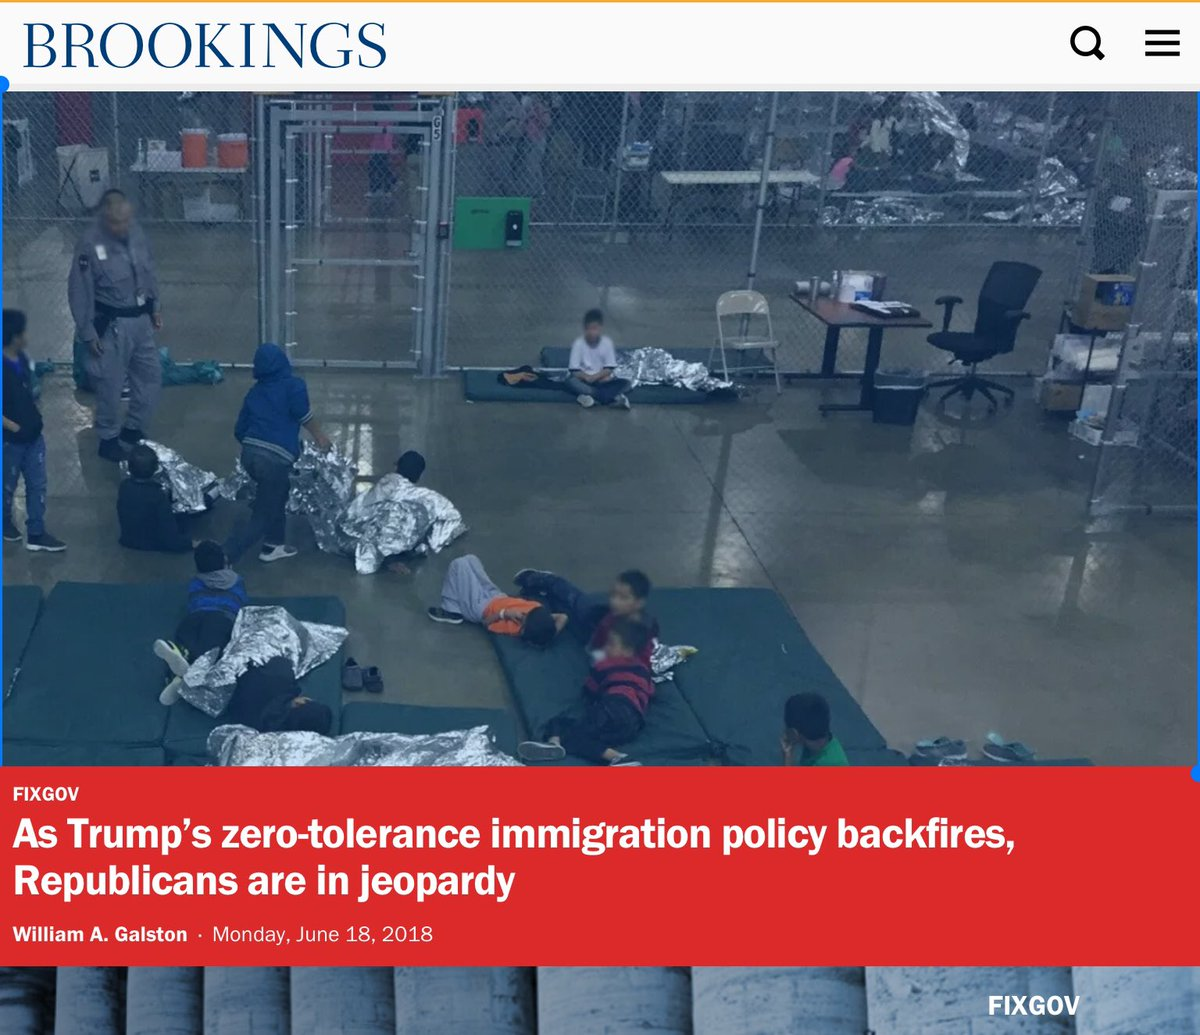 @IvankaTrump The Trump administration had 3 significant accomplishments, Ivanka  You stole thousands of immigrant children from their parents and put them in cages  You killed nearly 400,000 Americans because you lied about #COVID19  And you incited a coup where 5 people died  #impeachment